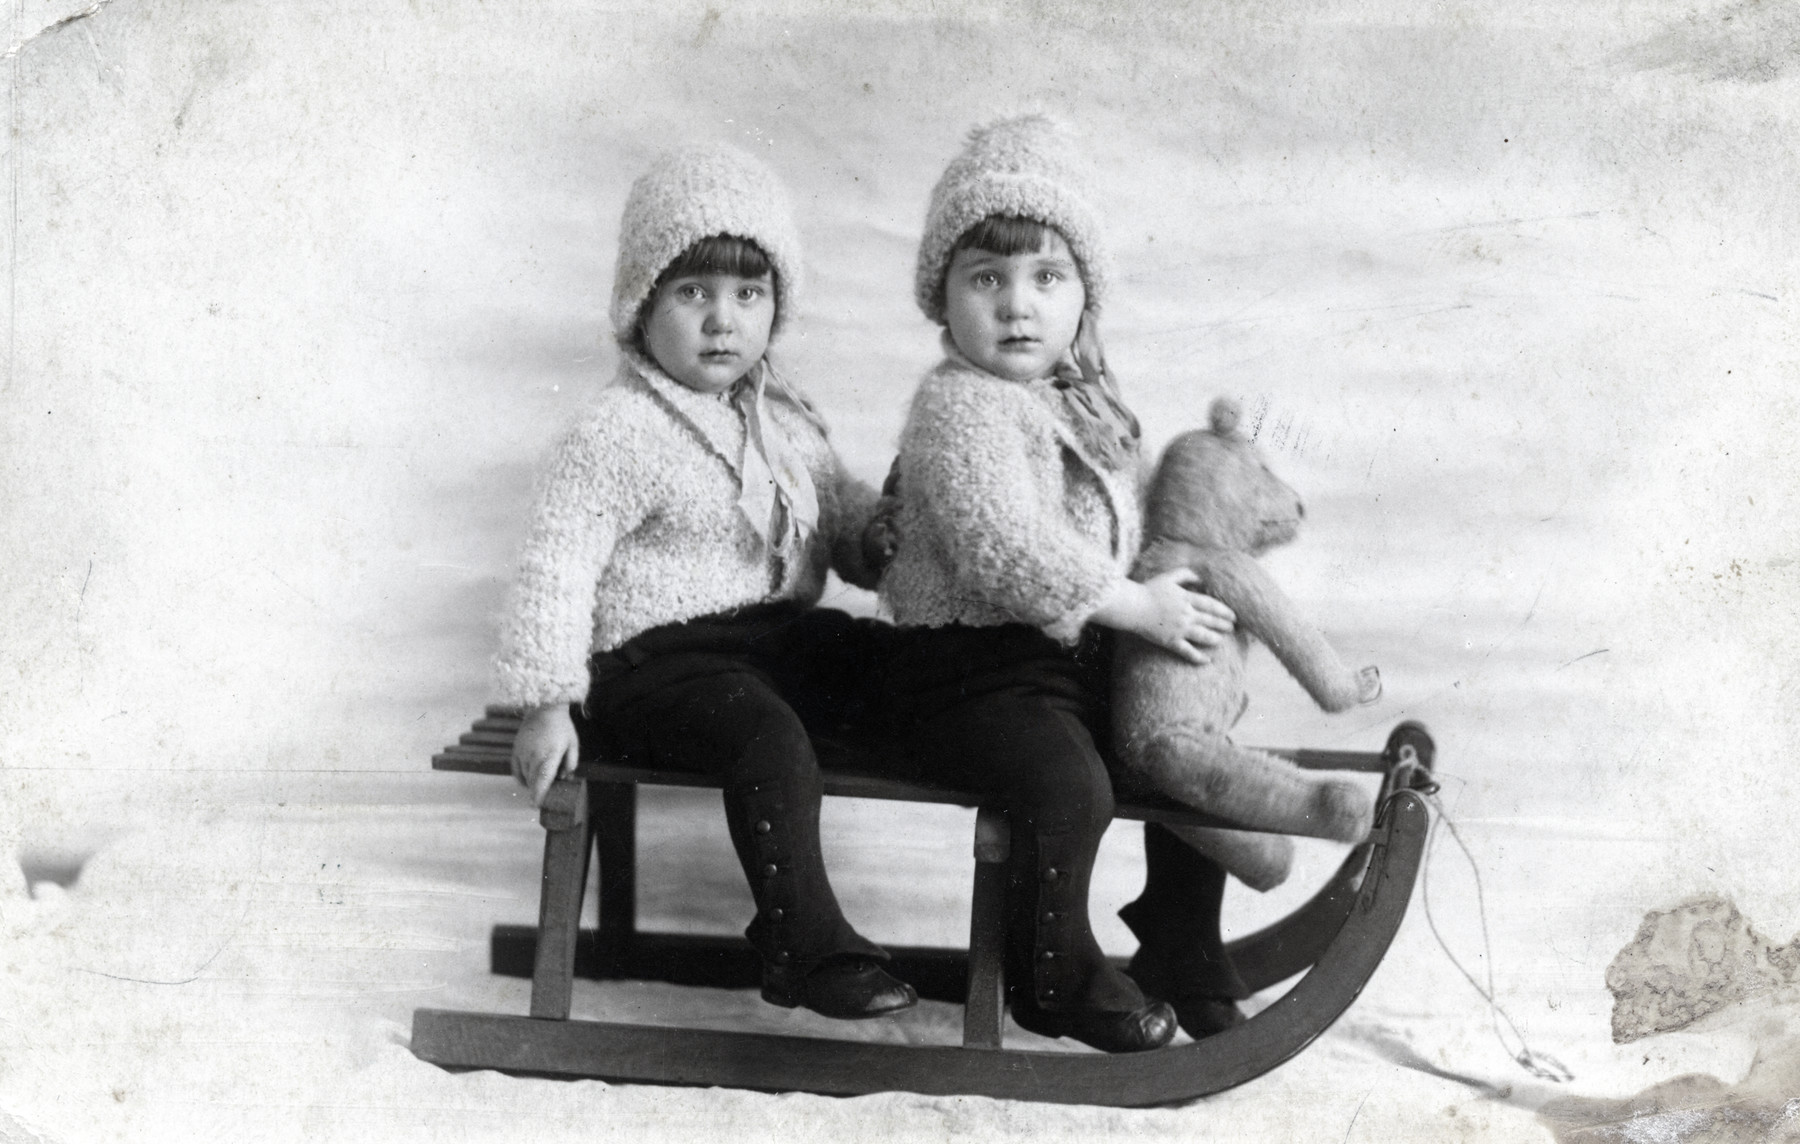 Studio portrait of twins Regina and Ruth Anders sitting on a toy sled with a stuffed bear.